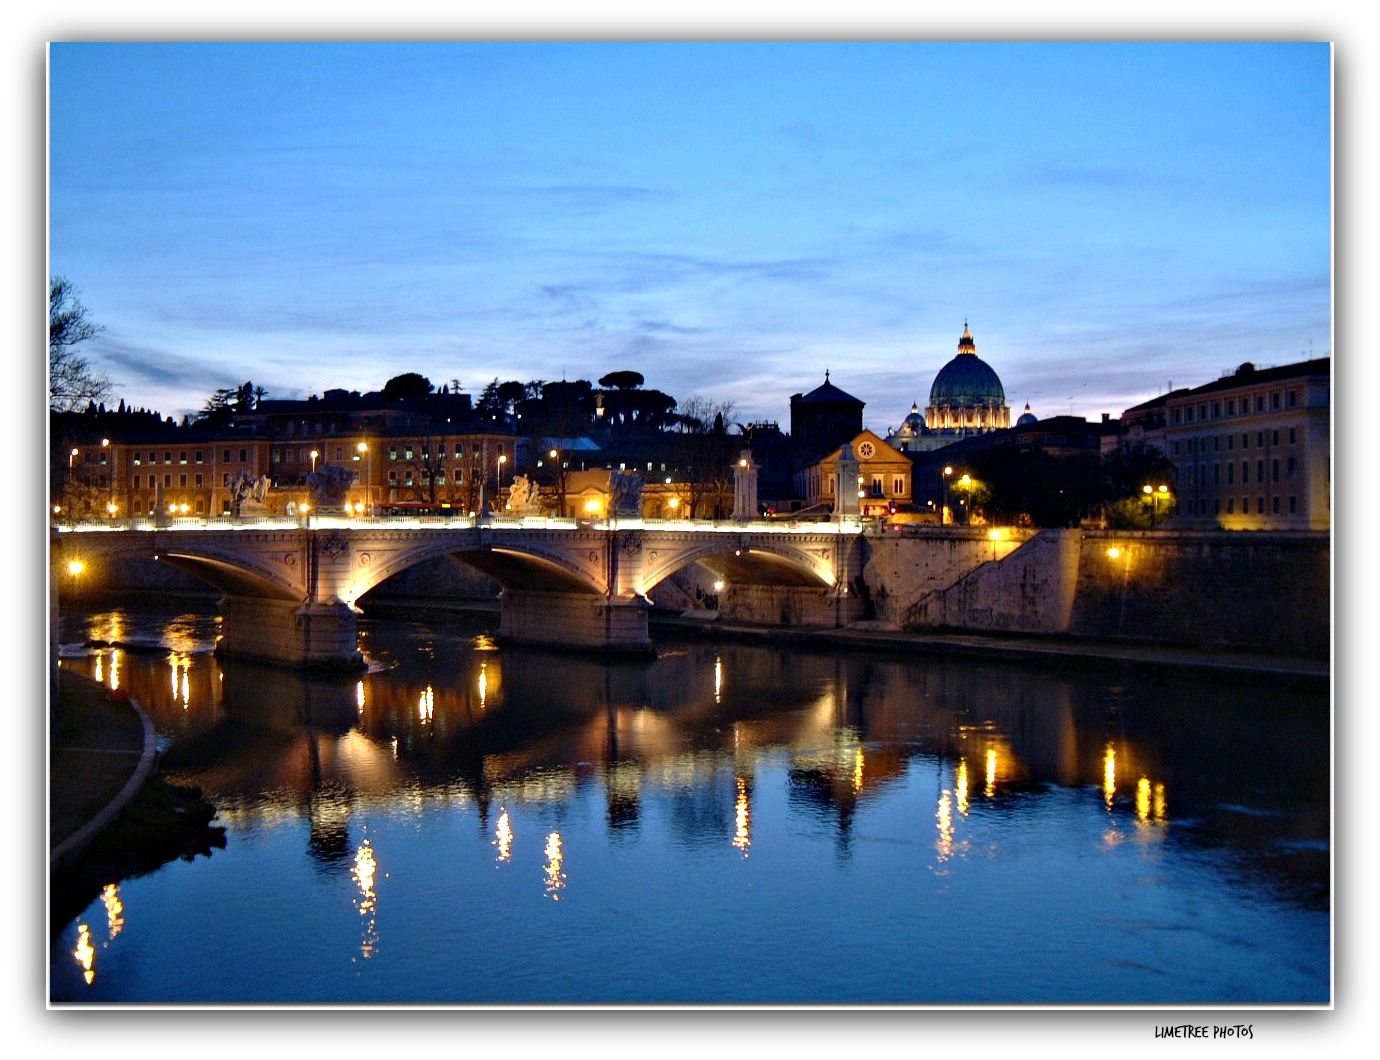 Fiume Tevere at Night